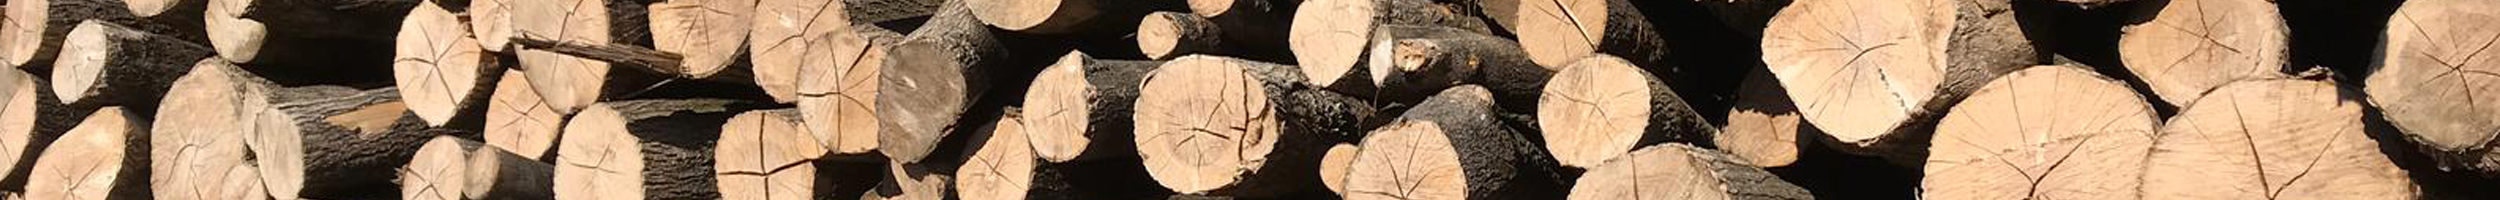 About Us header image of stacked logs at ALL FIRED UP in Dereham